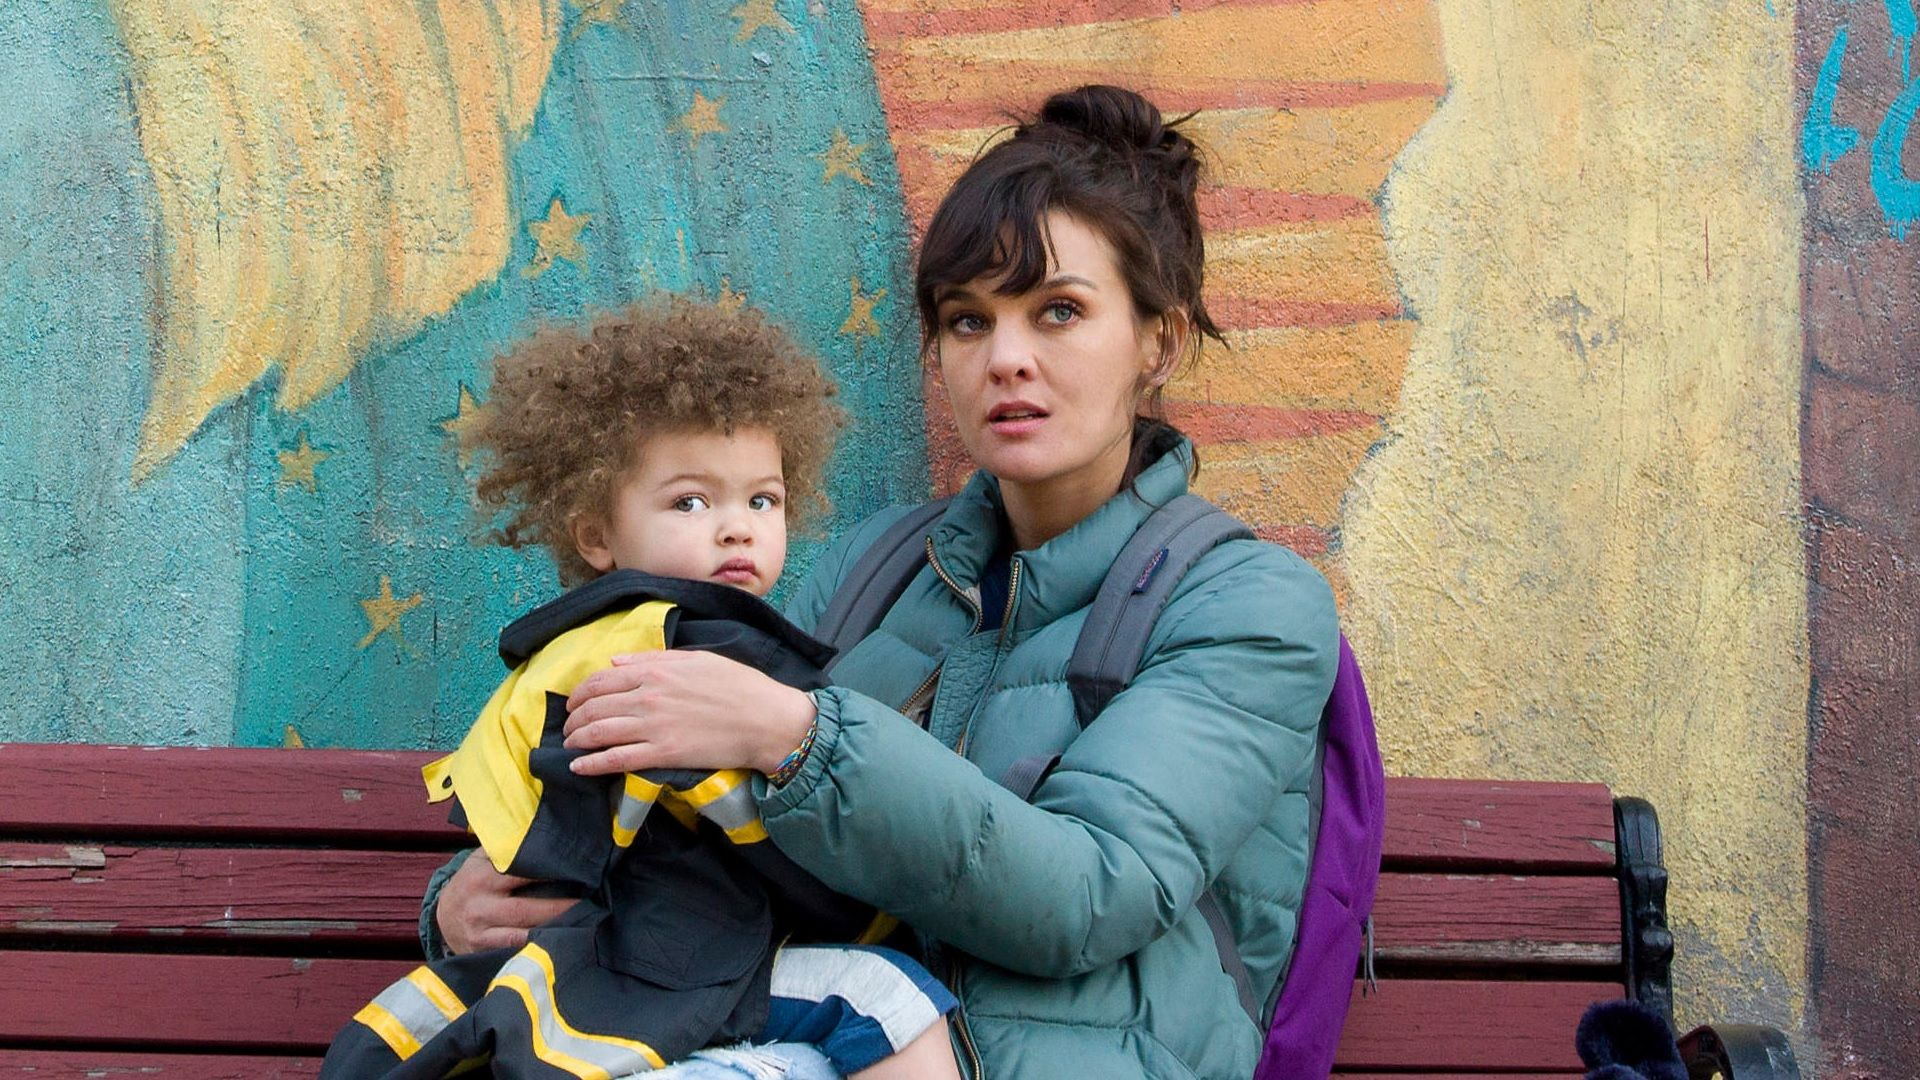 Smilf Live Stream Watch Season 2 Episode 5 Without Cable